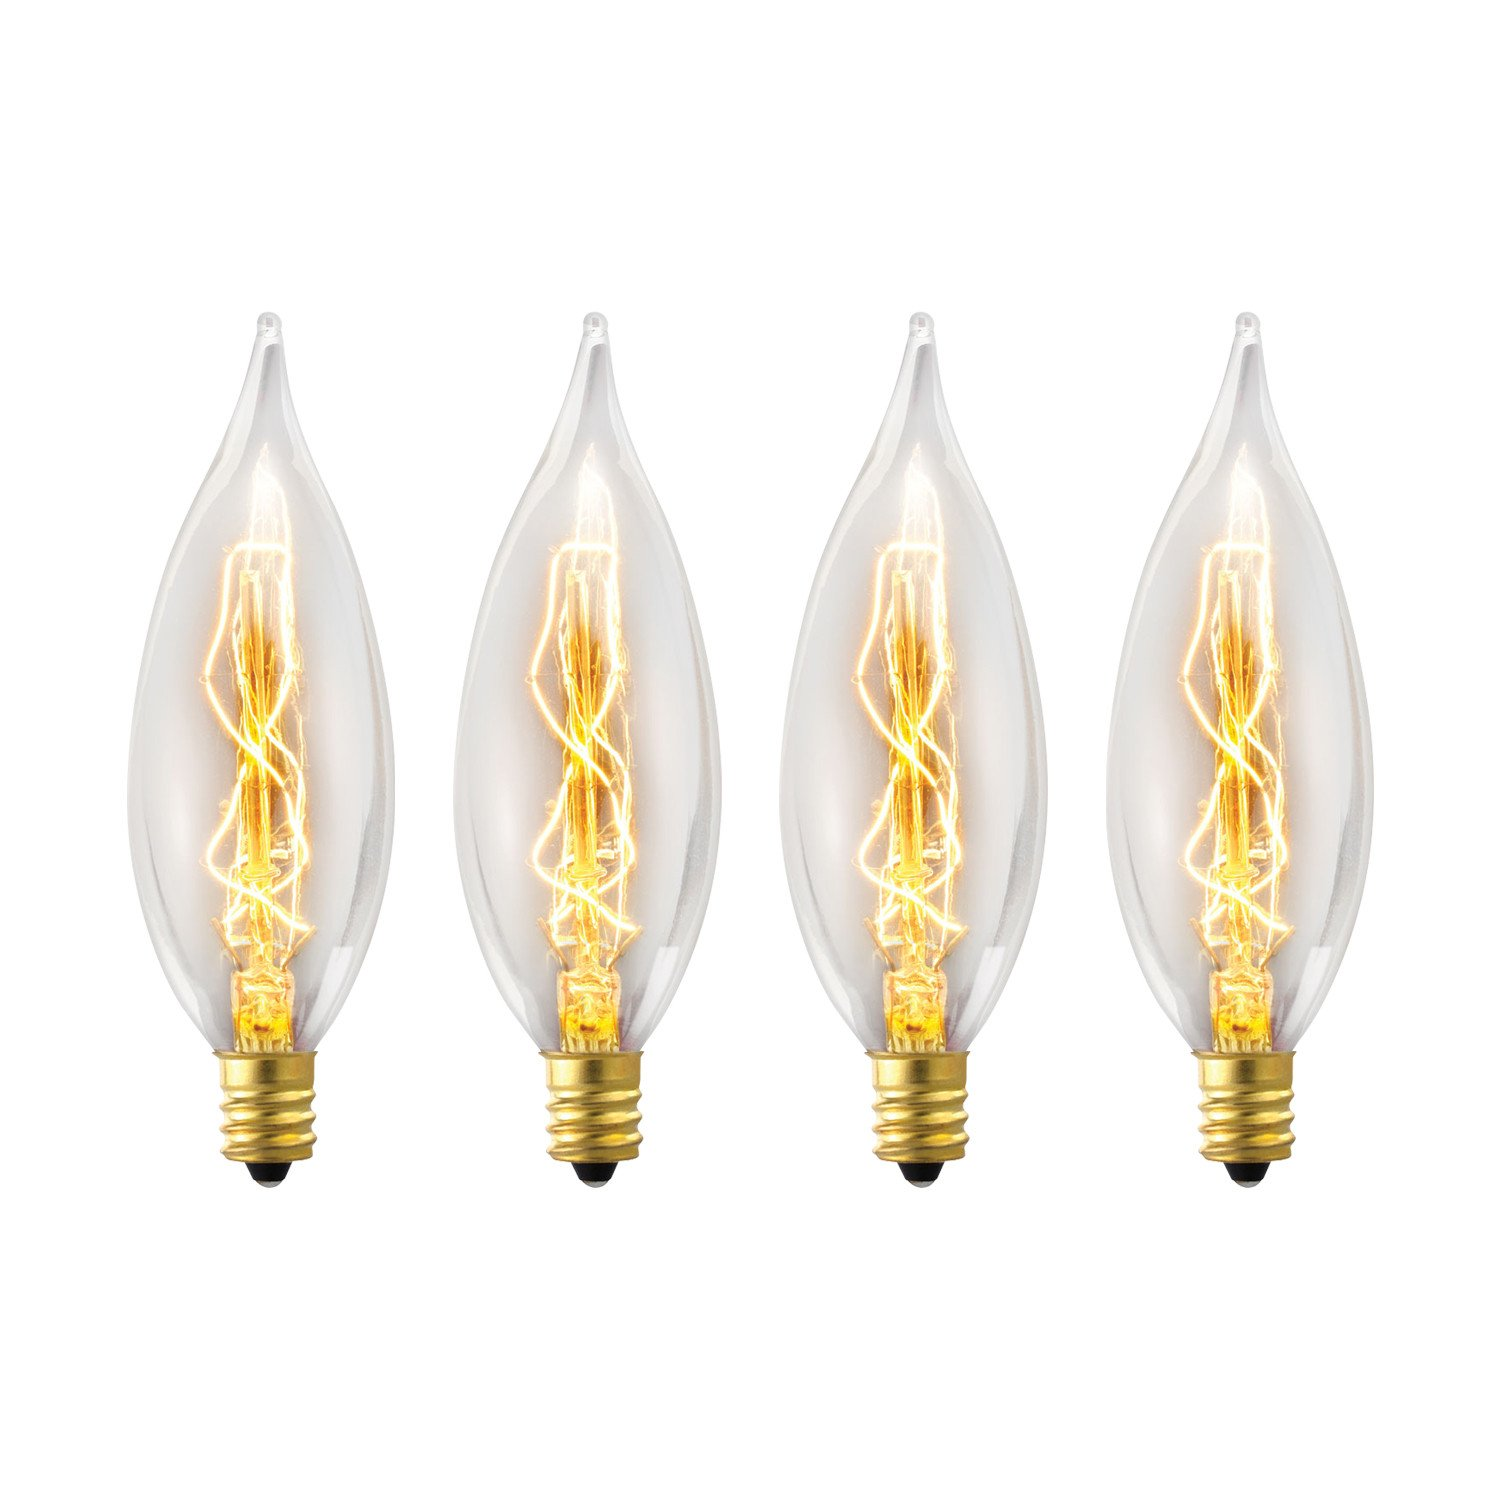 Globe Electric 25W Vintage Edison CA10 Flame Tip Incandescent Filament Light Bulb 4-Pack, E12 Base, 105 Lumens, 01327 by Globe Electric